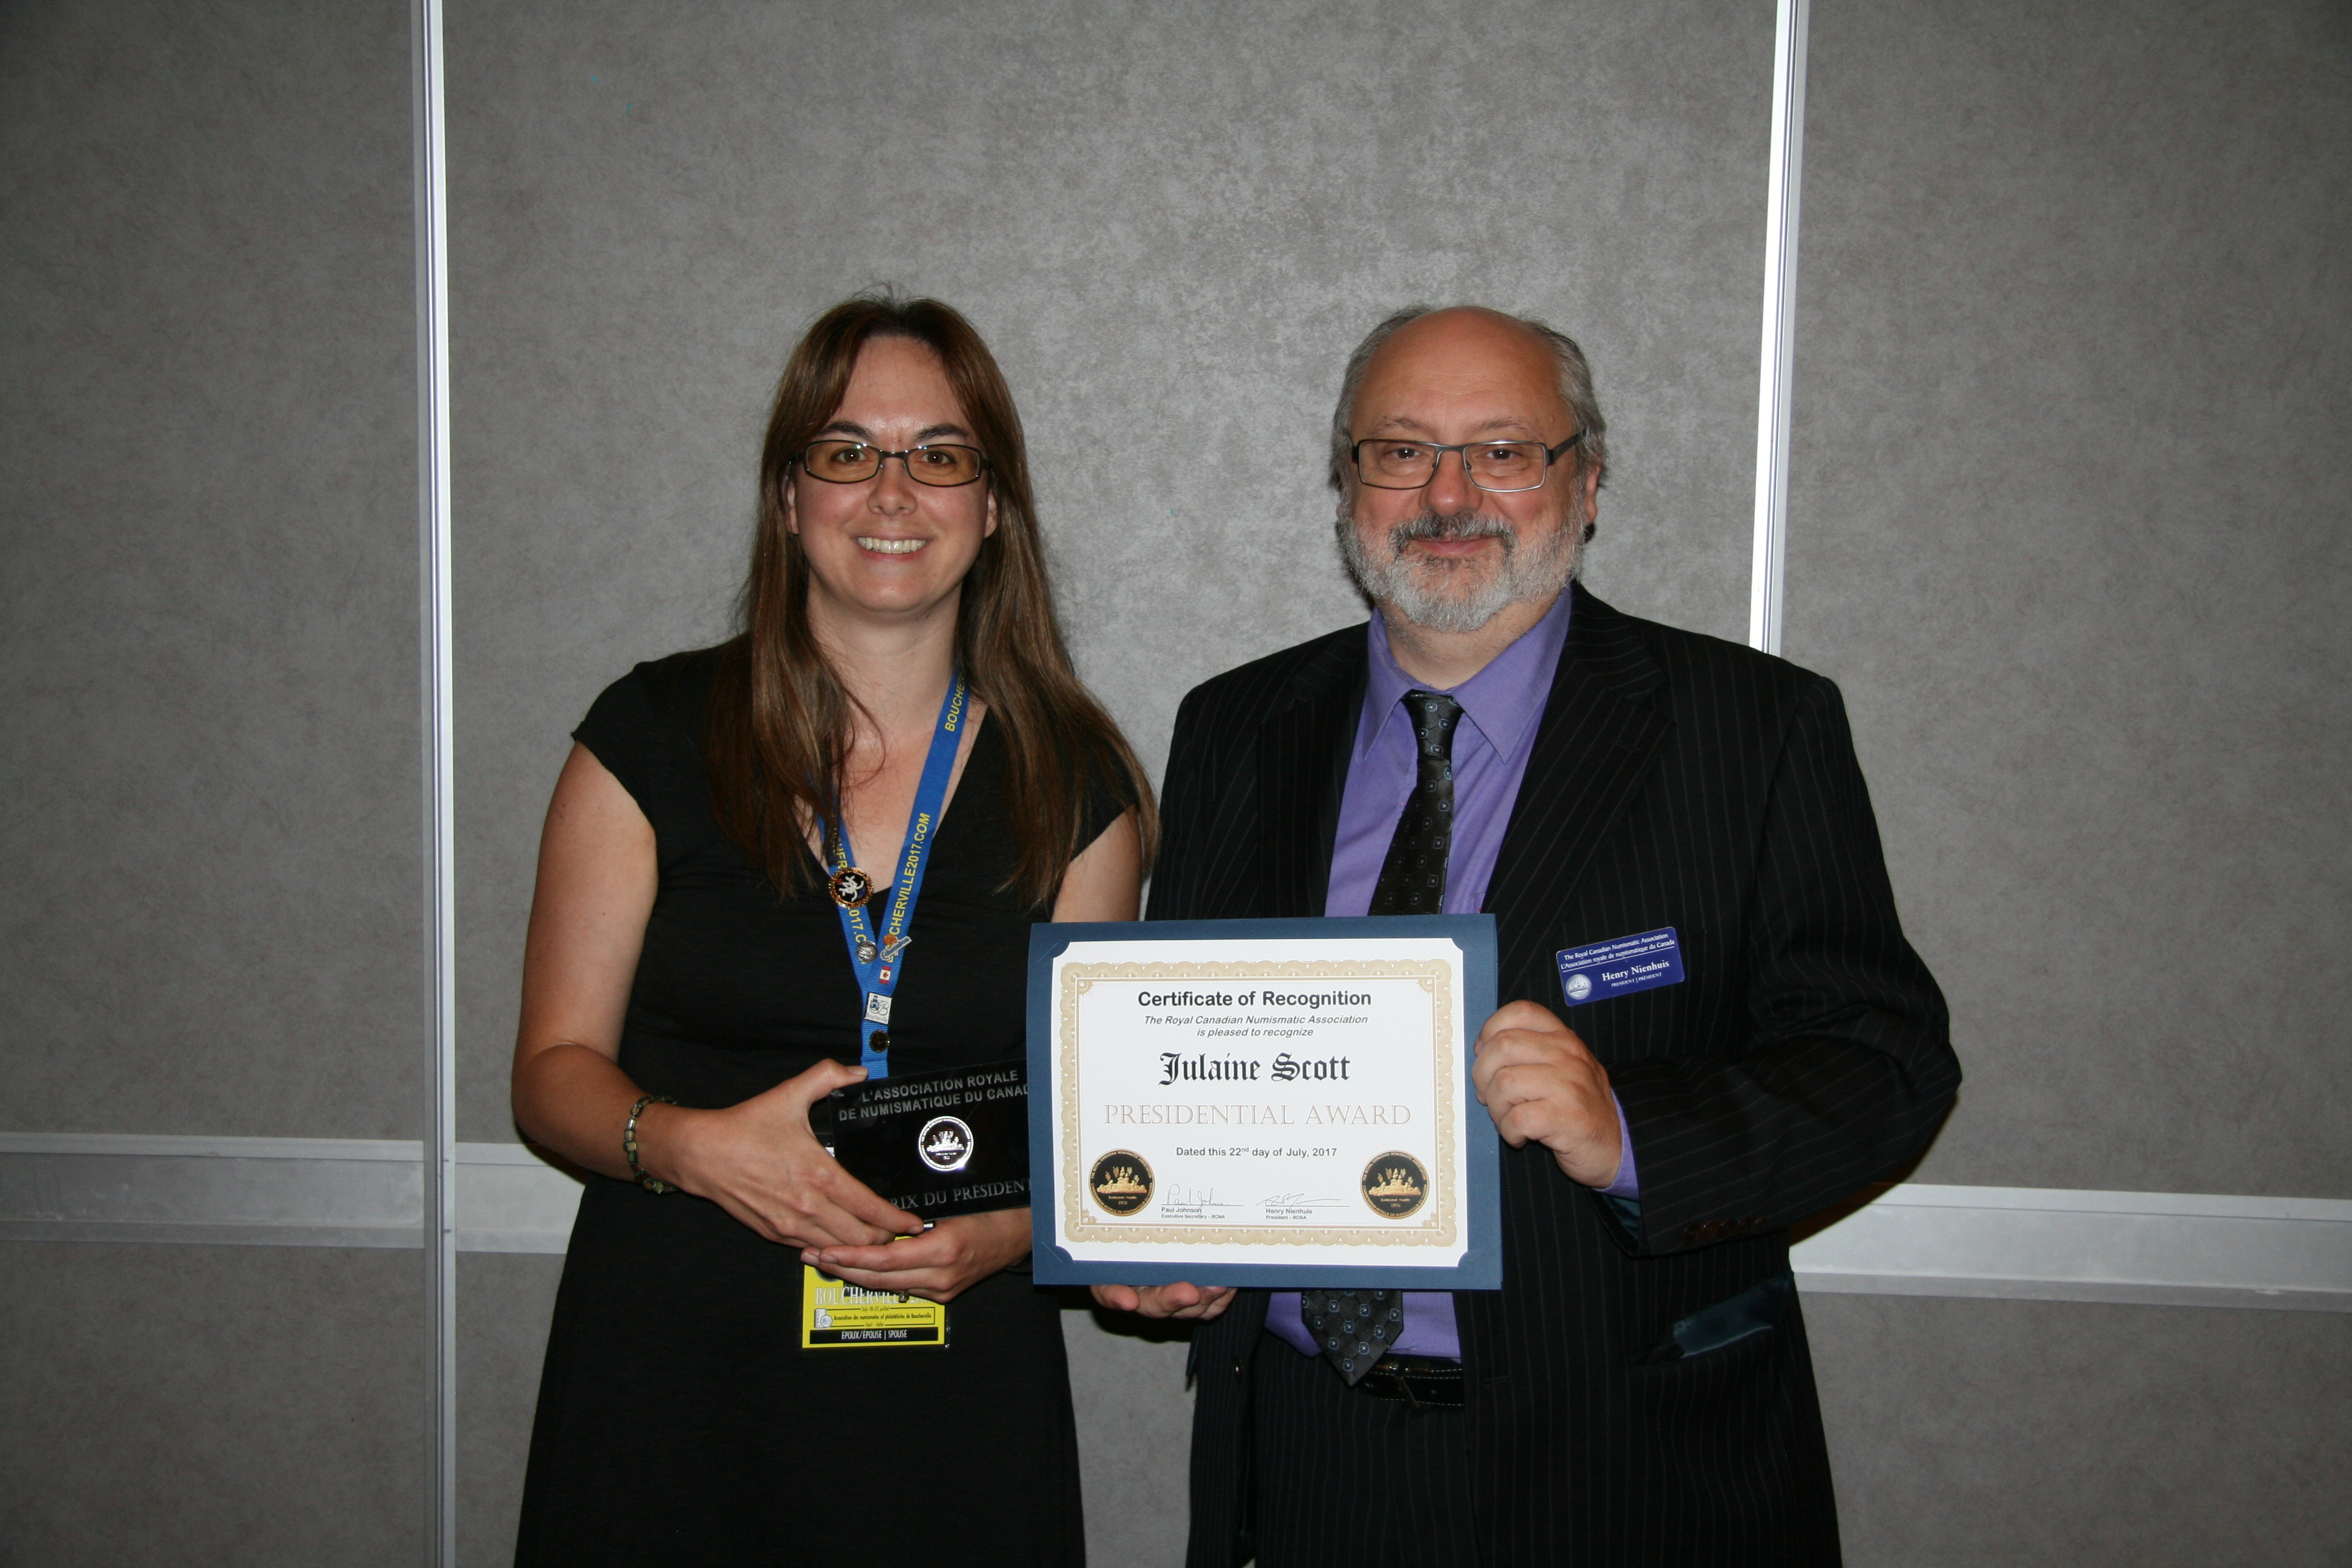 <p><strong>Julaine Scott</strong> (left) receiving Presidential Award from <strong>Henry Nienhuis</strong> (right).</p>